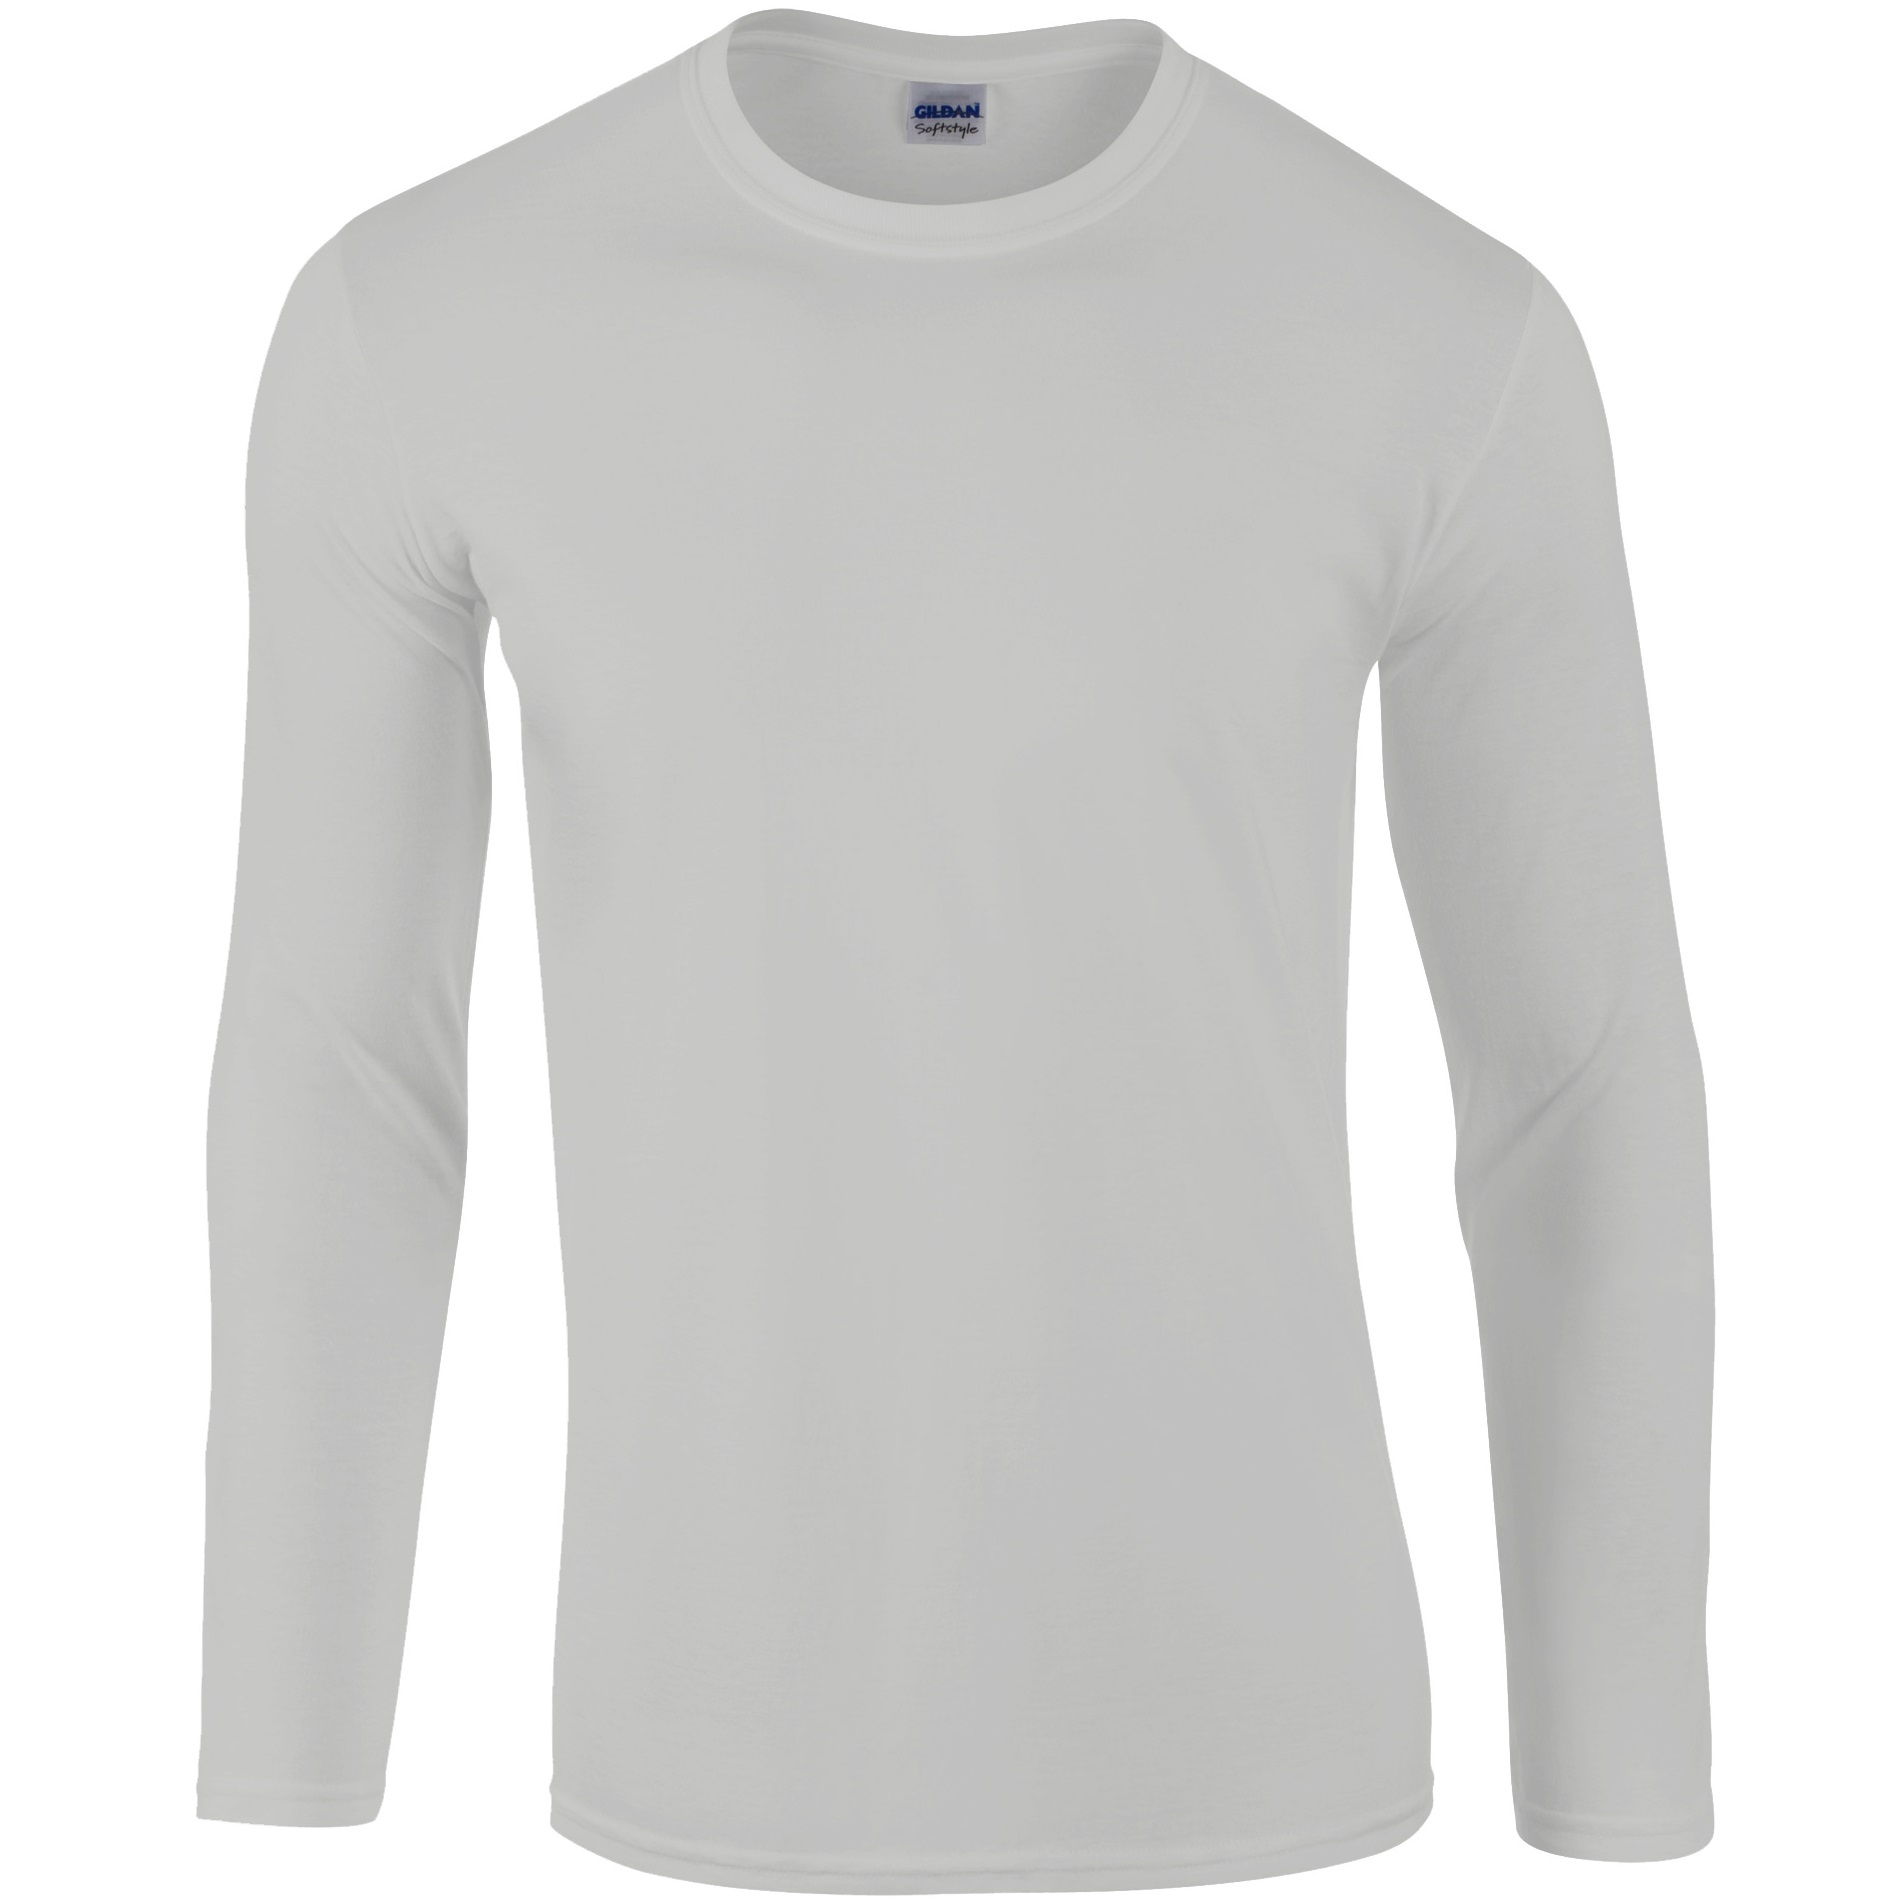 Gd011 softstyle long sleeve t shirt gdb manufacturing for T shirt with long sleeves